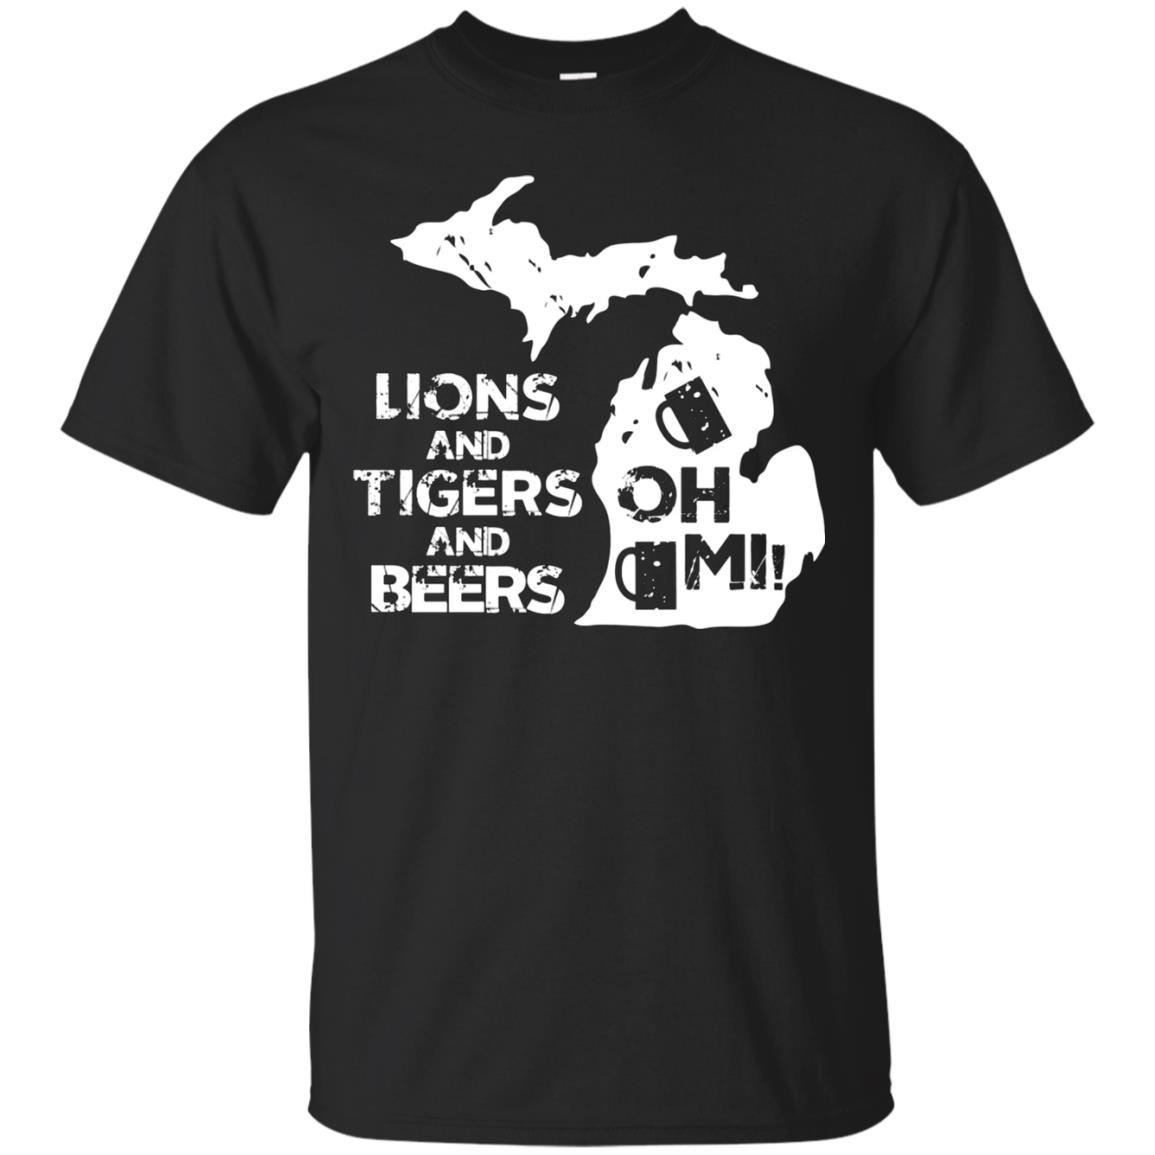 LIONS & TIGERS & BEERS, OH MI! active T-shirt